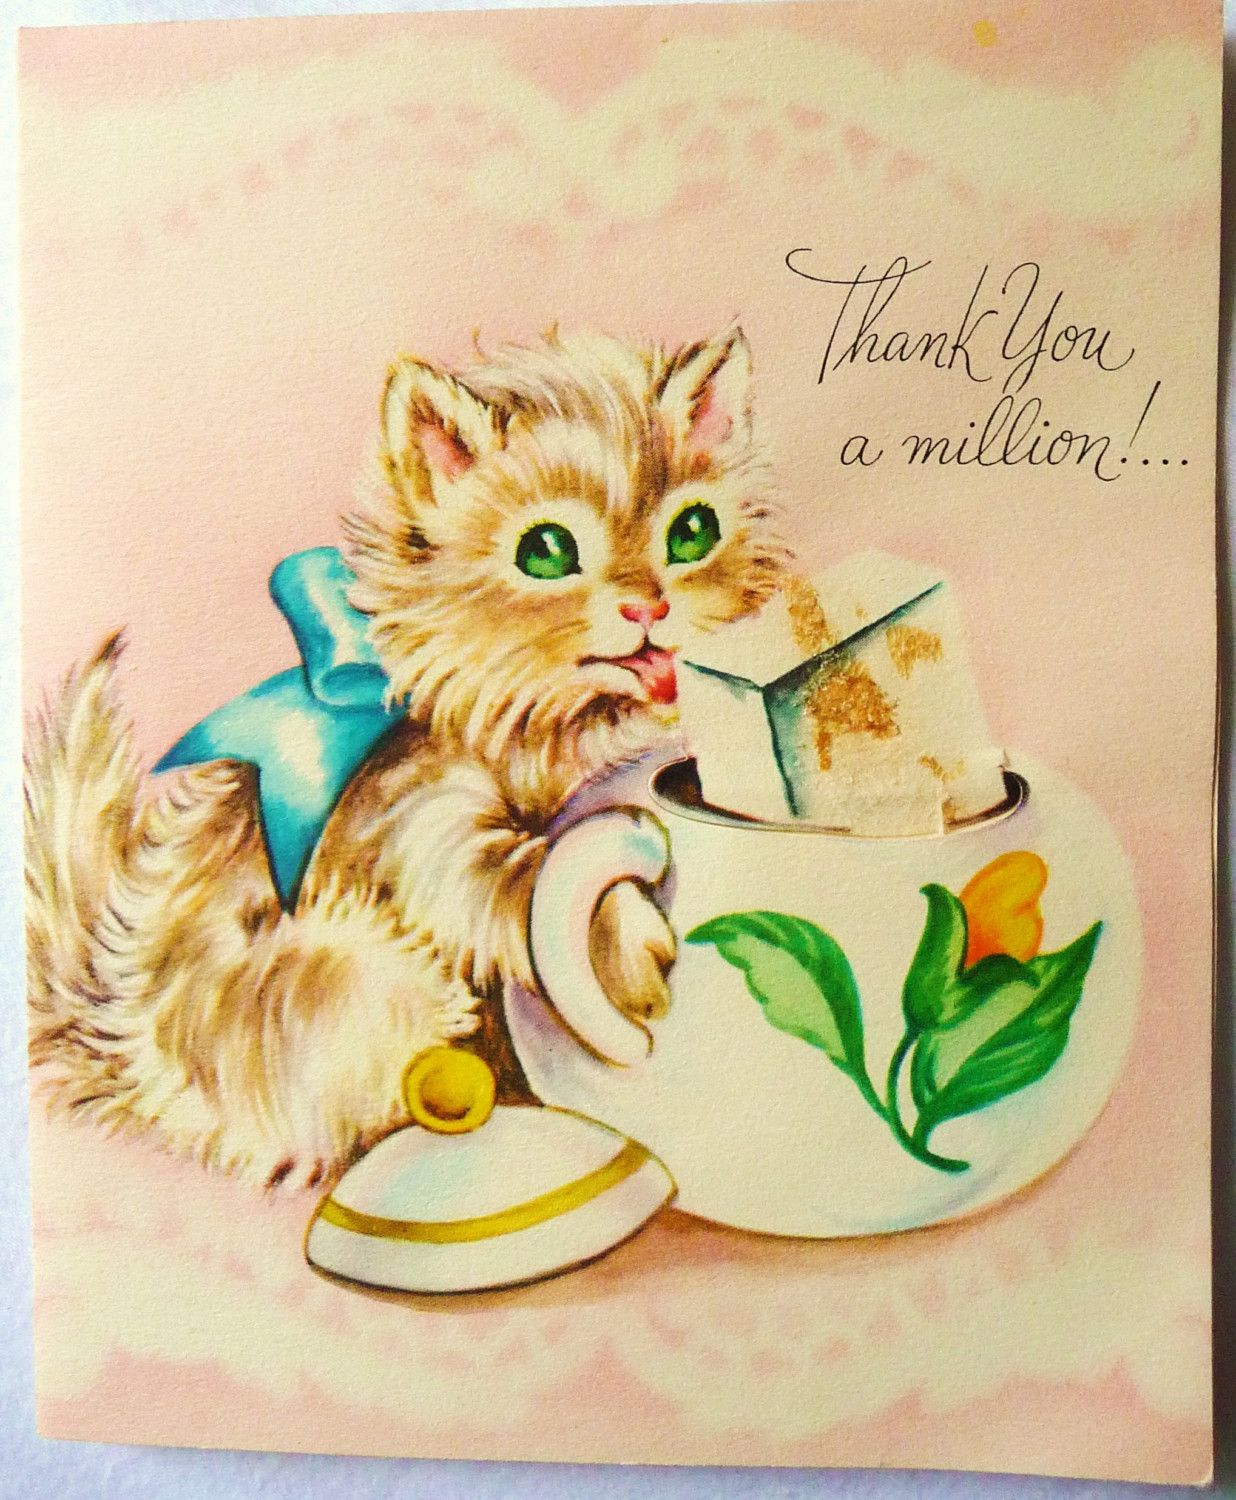 Vintage thank you card google search vintage thank you cards vintage greeting cards vintage thank you kristyandbryce Images